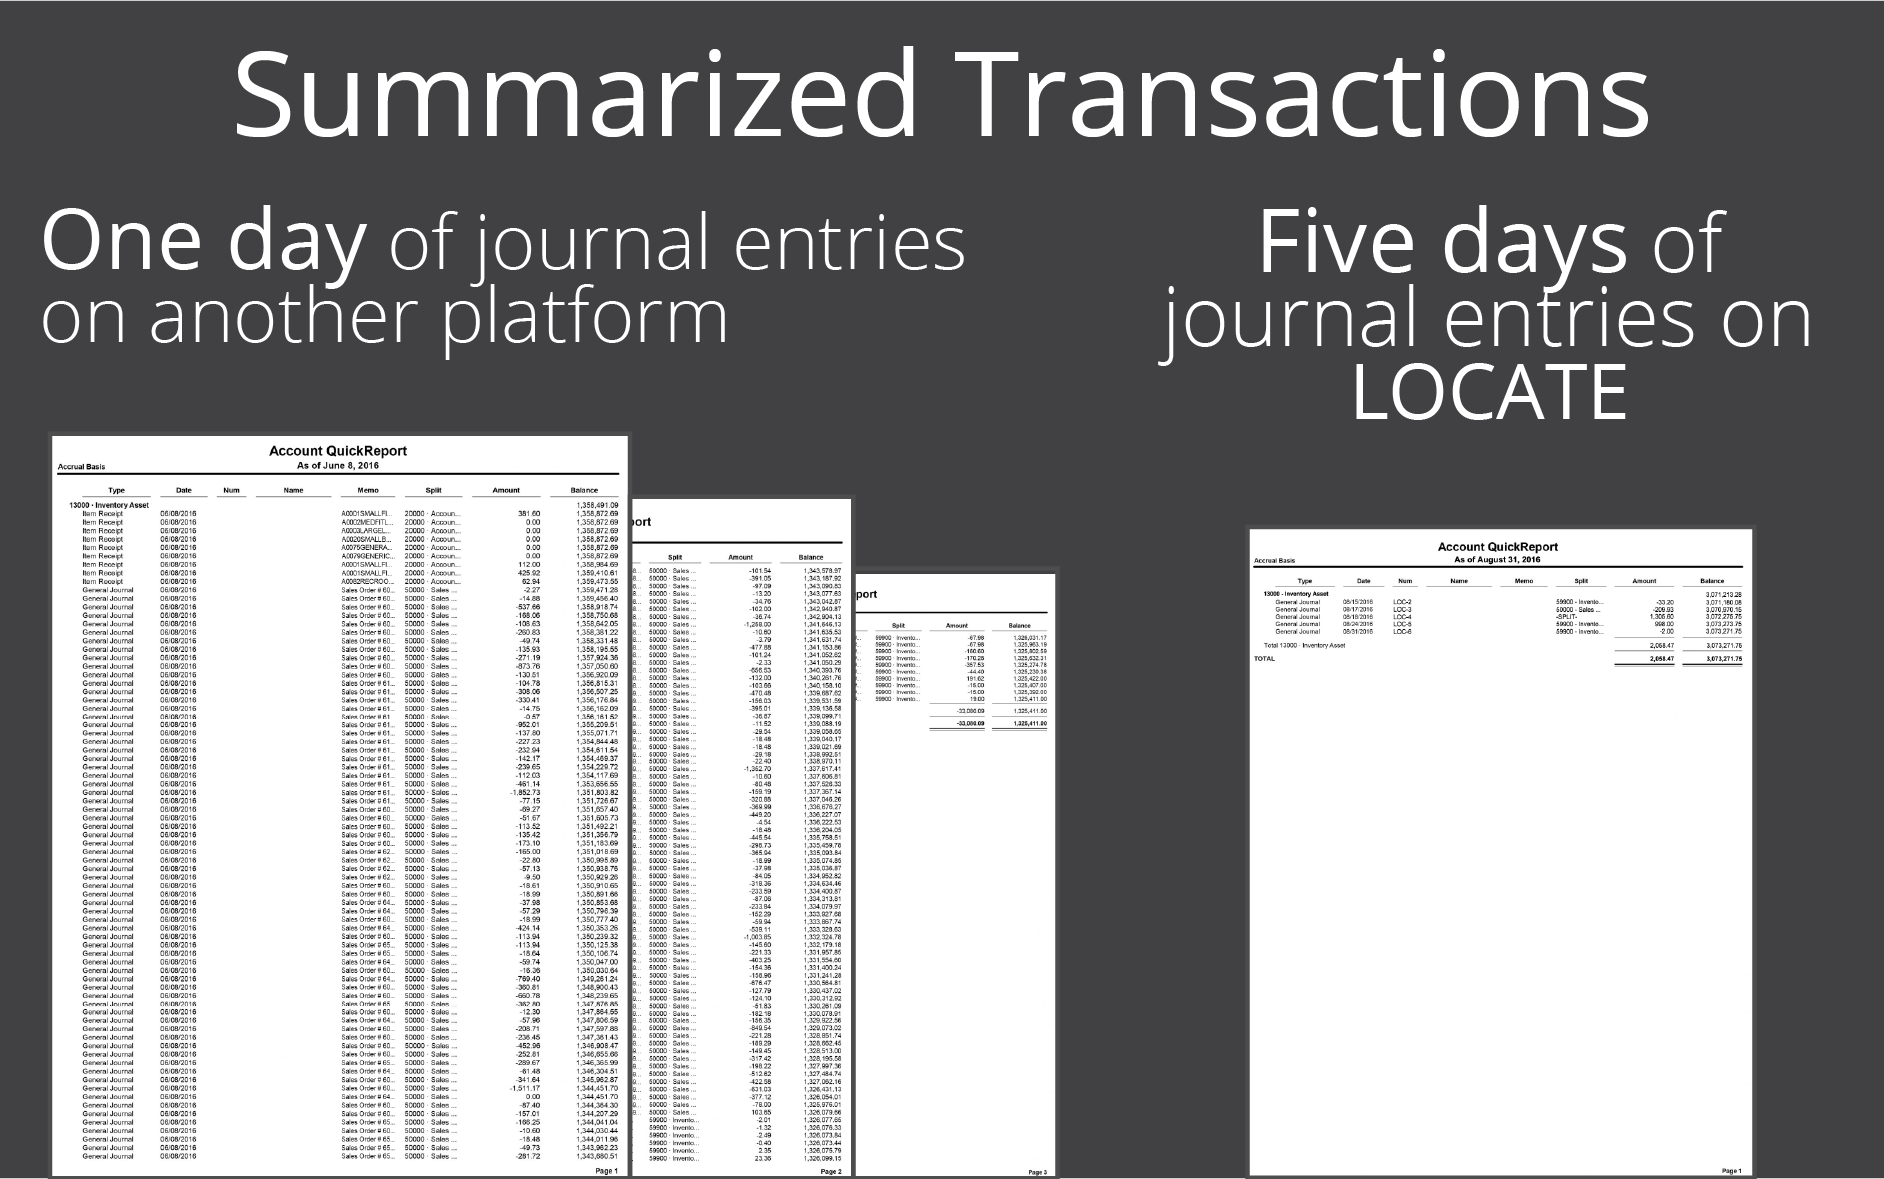 Keep your financial platform running lean and clean with LOCATE's summarized accounting